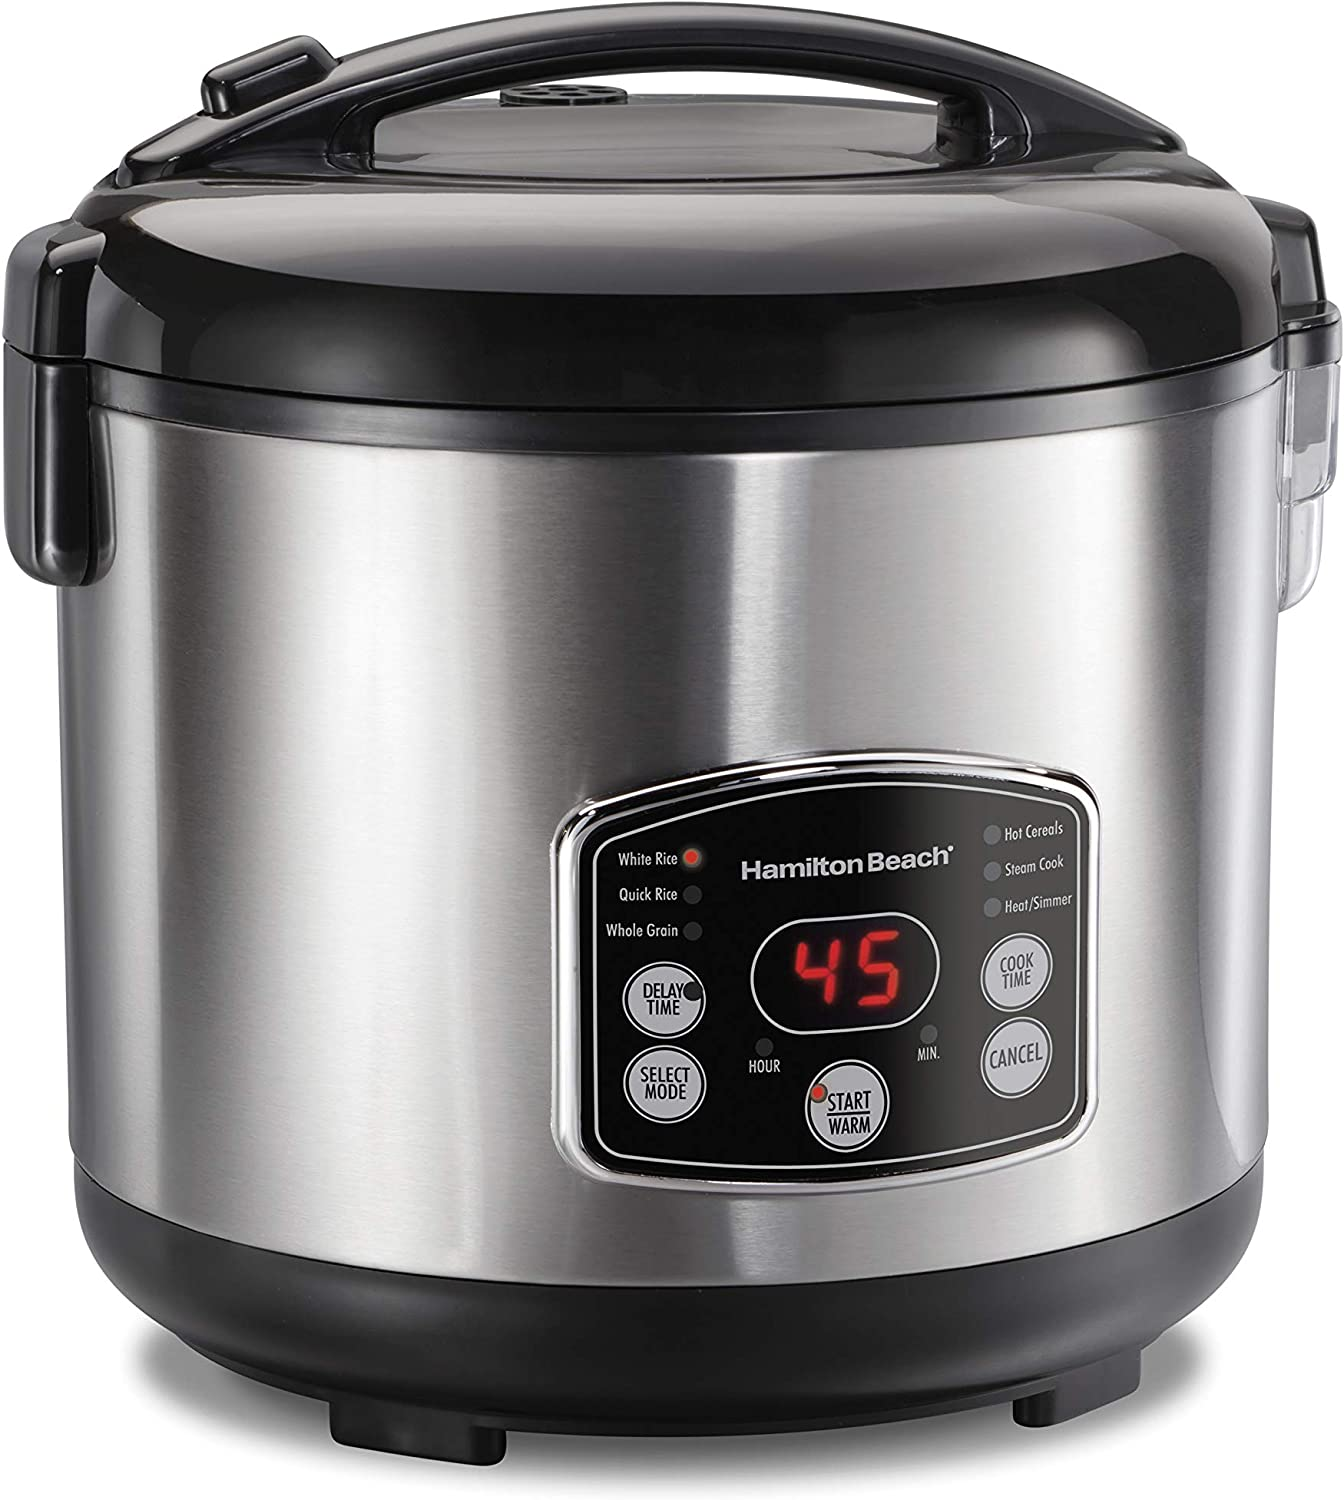 Hamilton Beach Digital Programmable Rice Cooker & Food Steamer, 14 Cups Cooked (7 Uncooked) With Steam & Rinse Basket, Stainless Steel (37548)